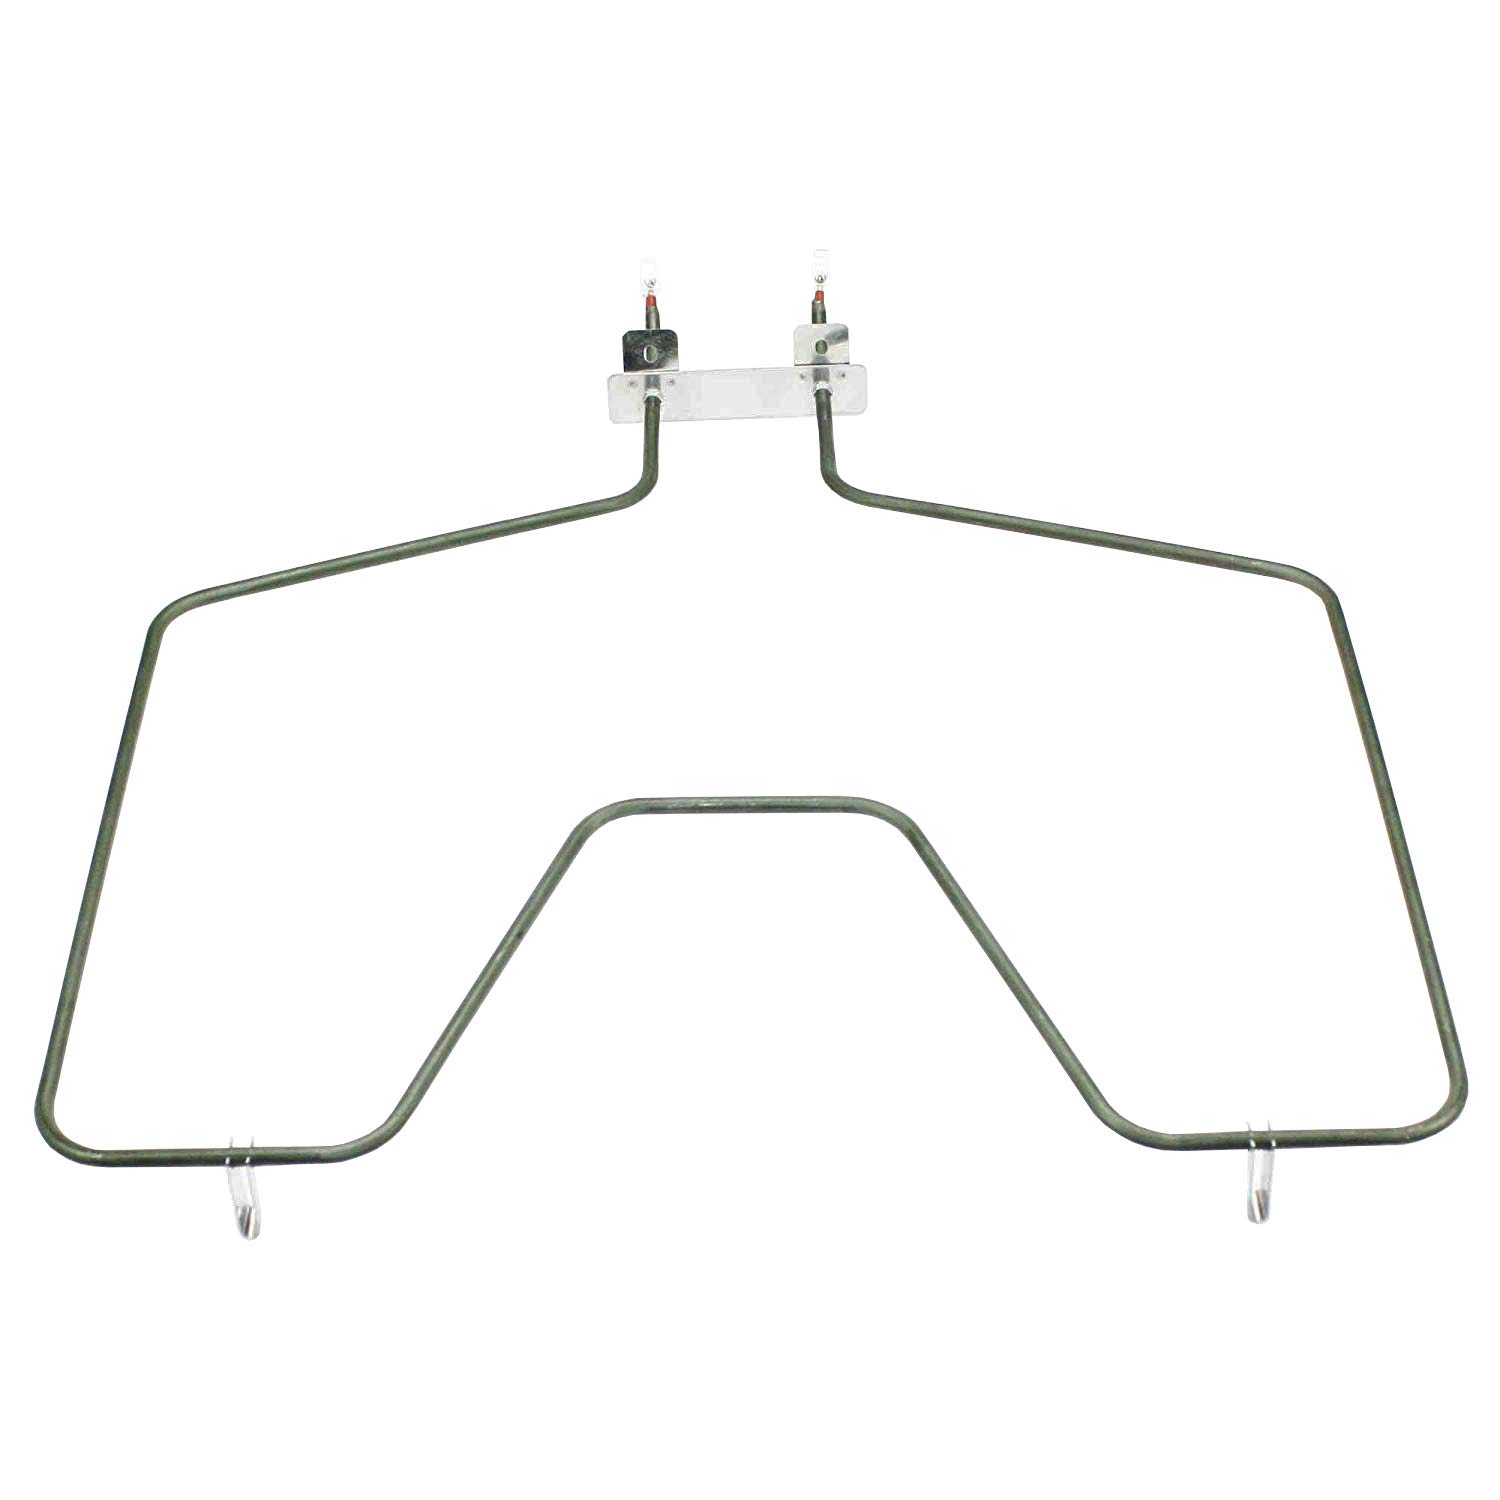 ge jbs55bk2ww oven bake element